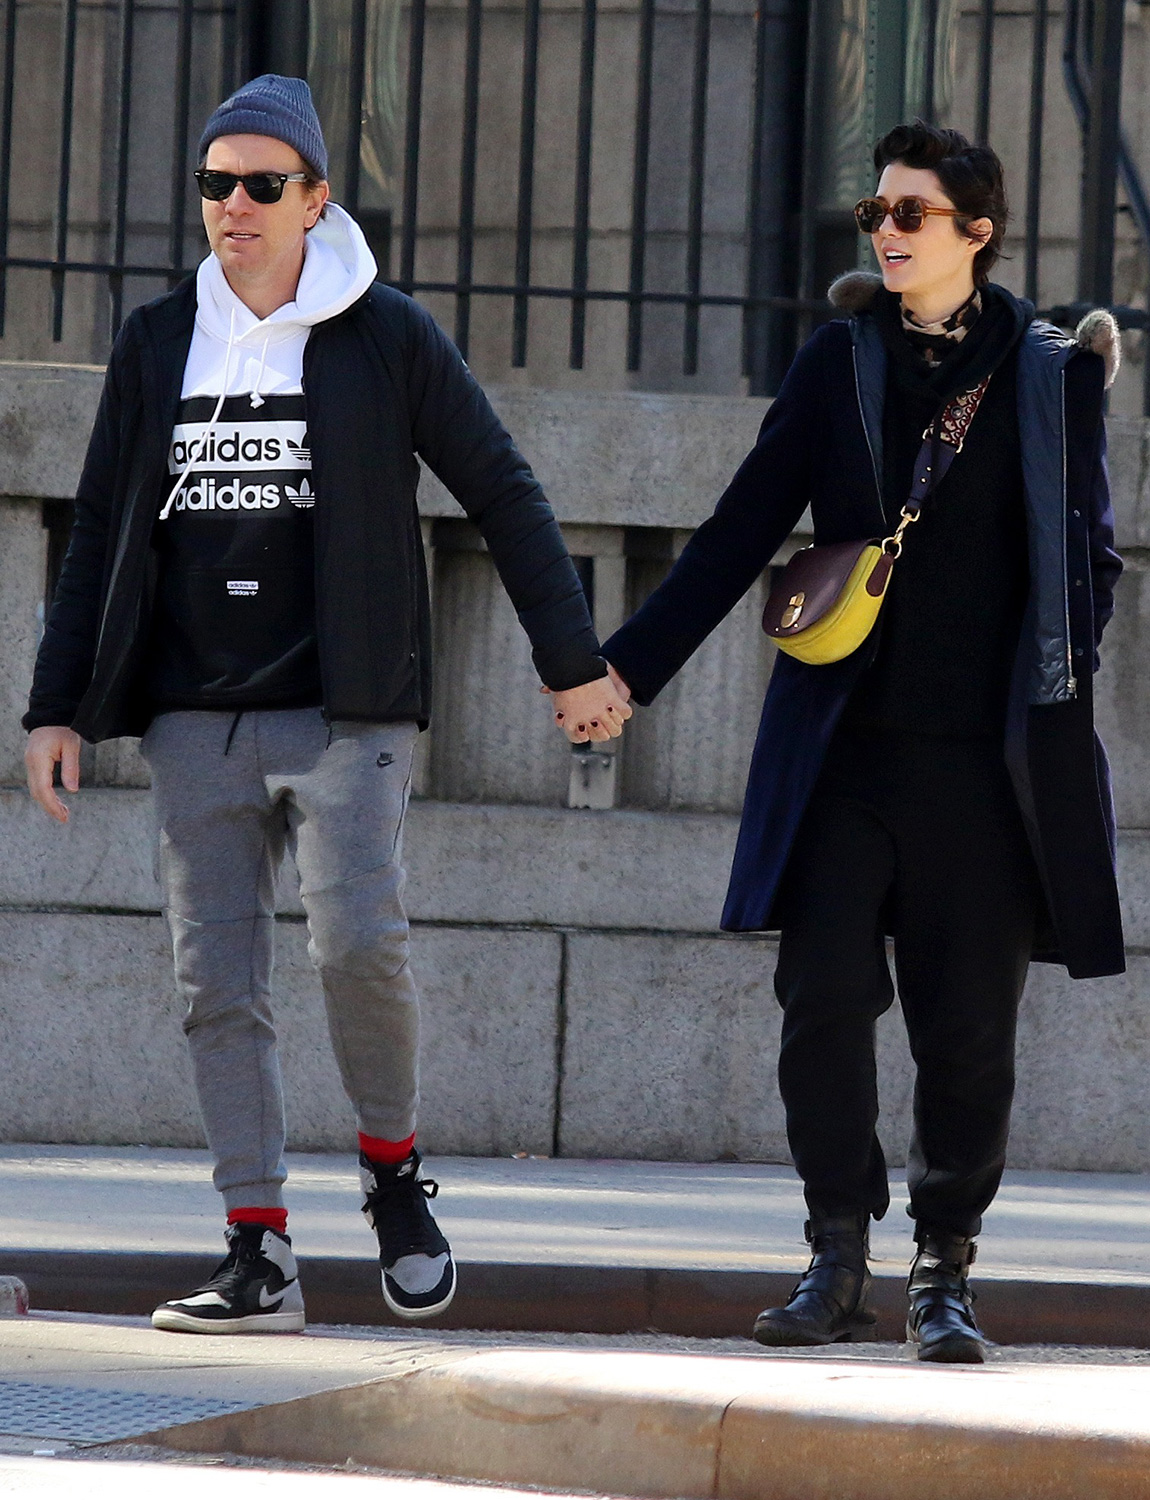 Ewan McGregor and girlfriend Mary Elizabeth Winstead share some PDA moments together on a romantic day out in Manhattan's Soho area